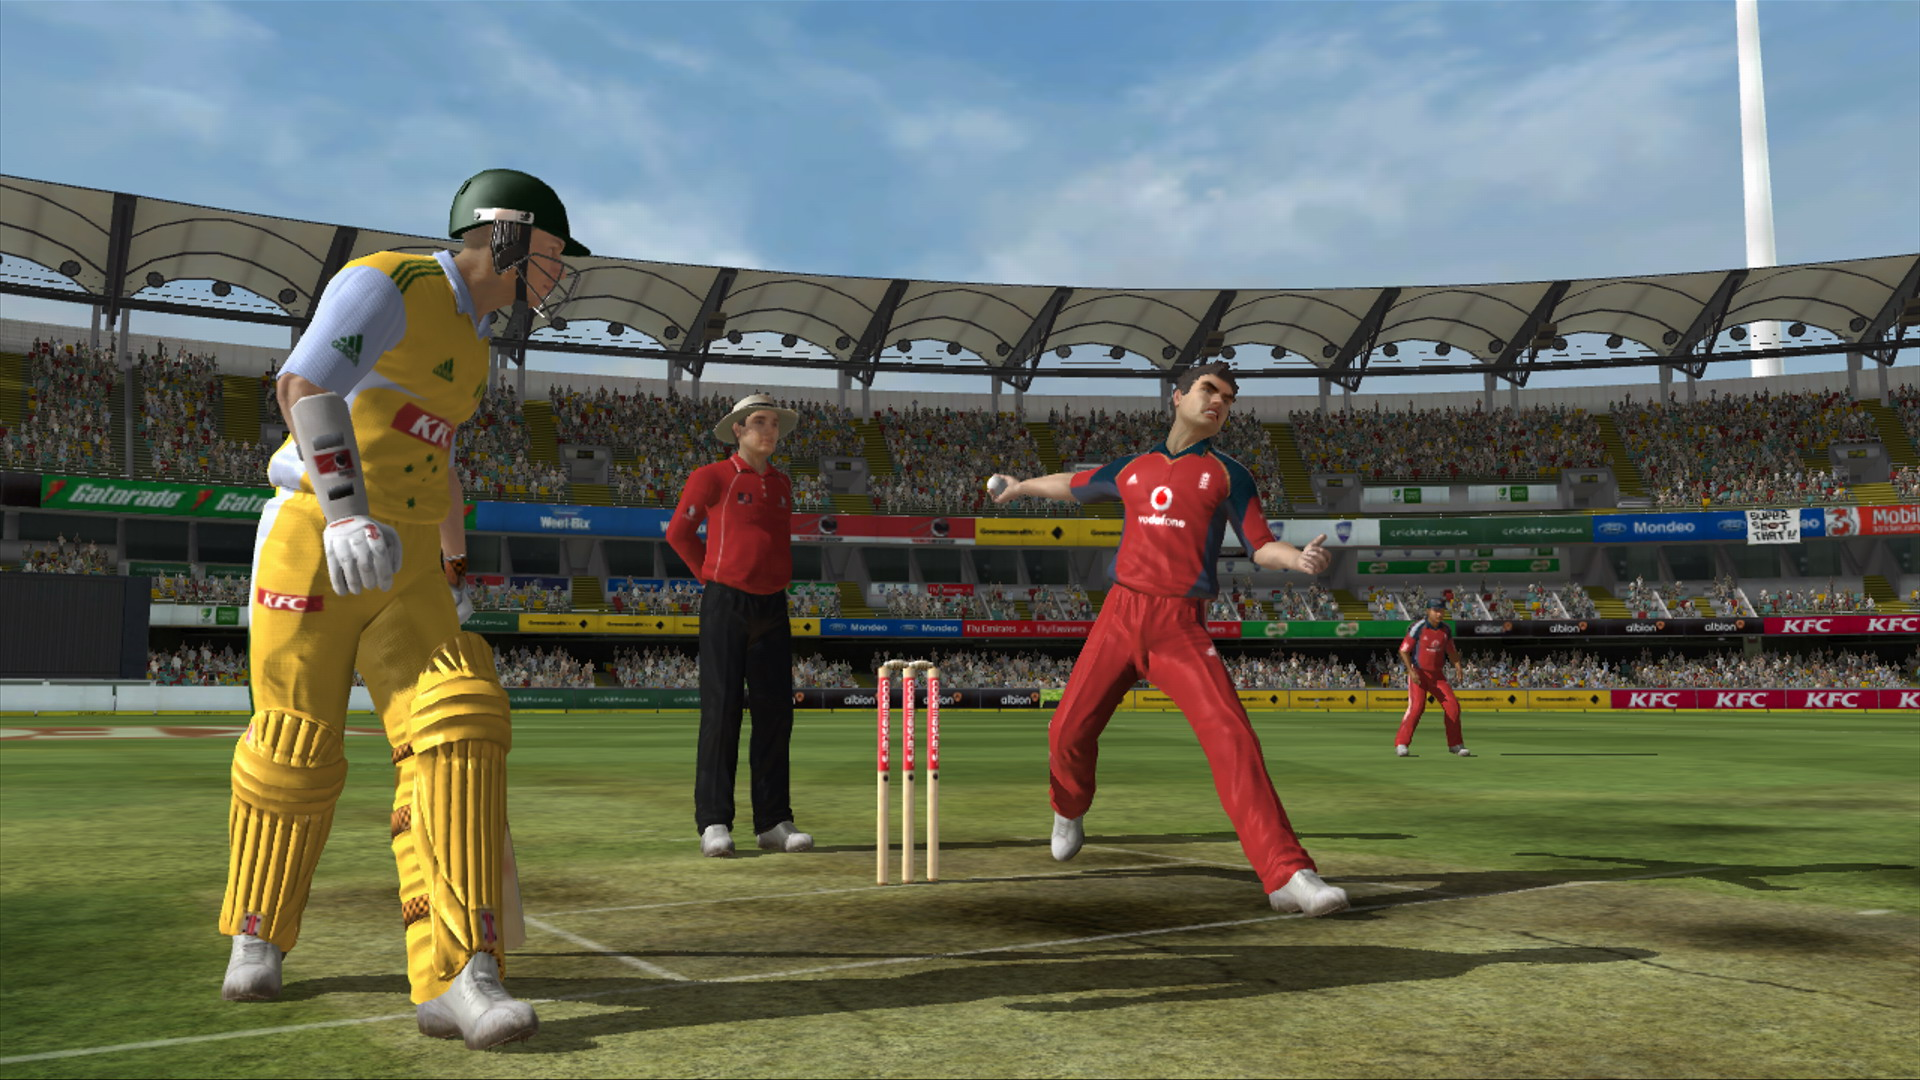 Ea sports cricket games 2009 free download.